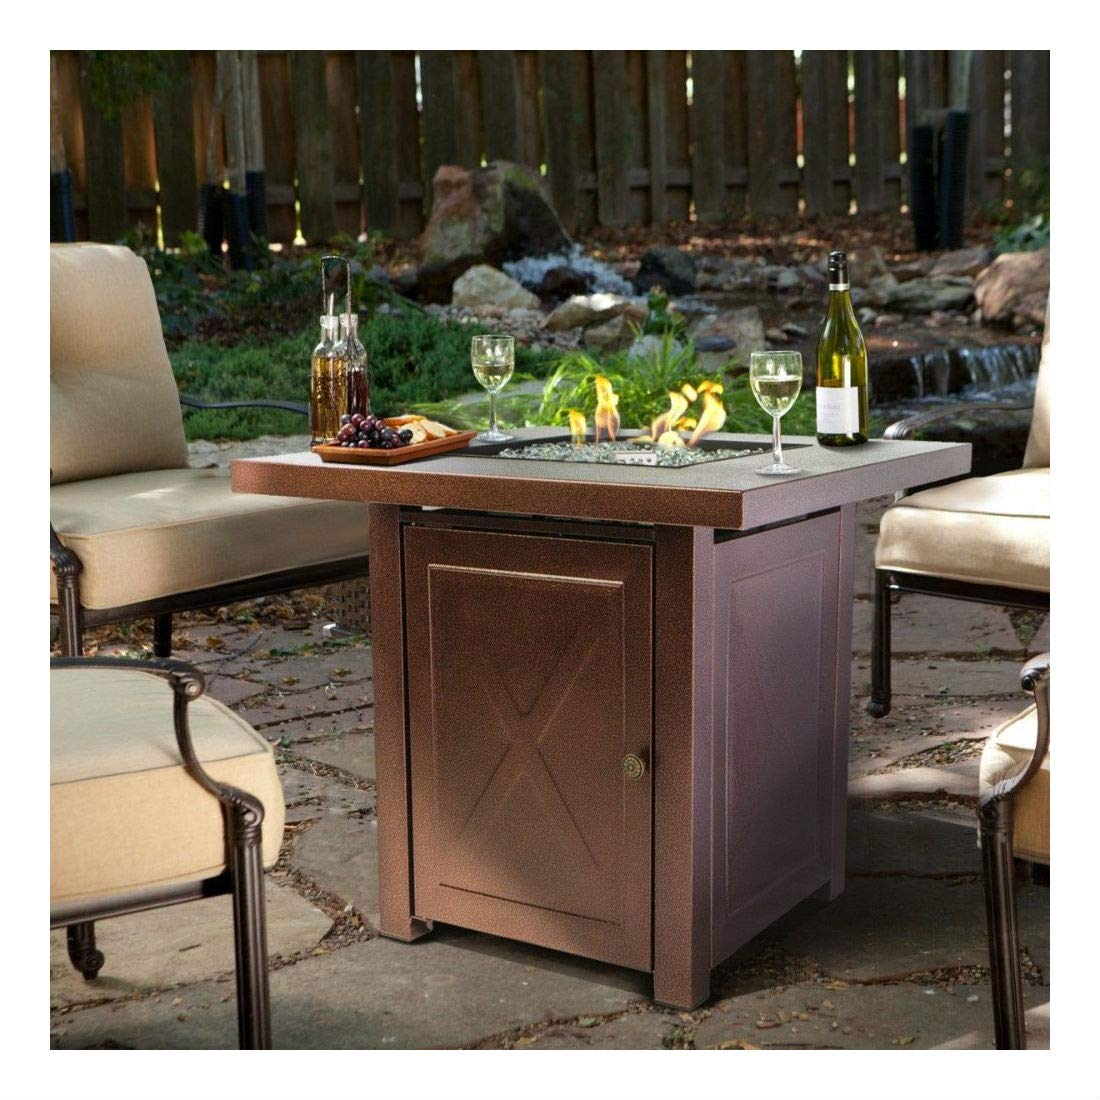 Outdoor Fire Pit Table Furniture Patio Deck Backyard Heater Fireplace LP Gas by Unknown